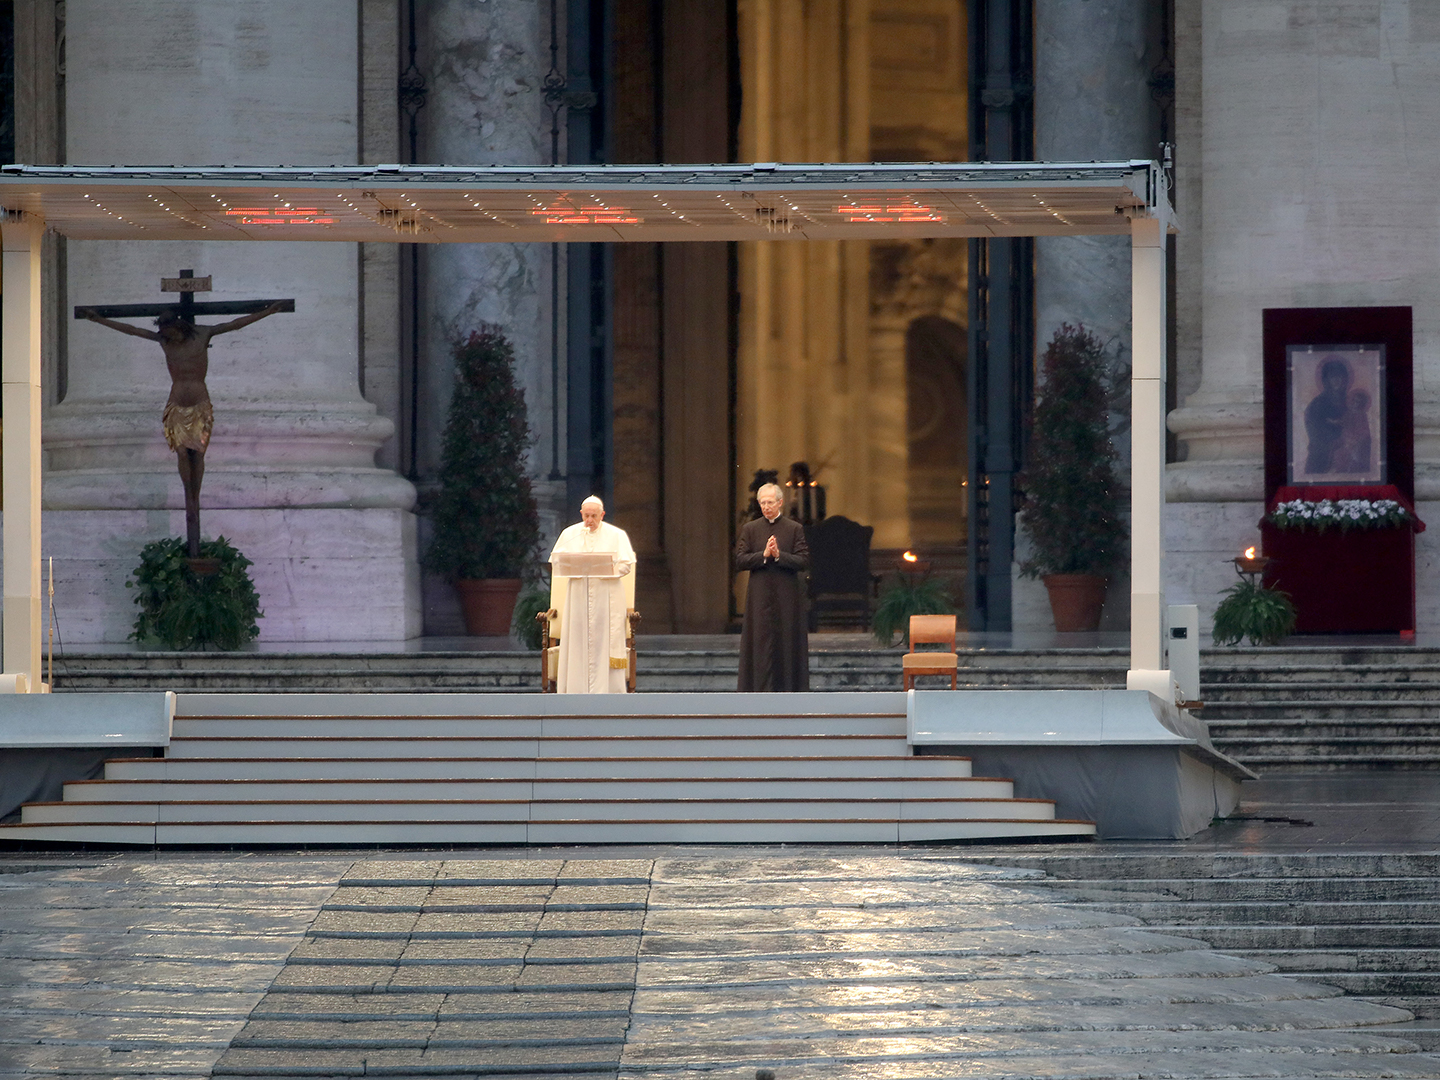 Pope Francis gives an Urbi et Orbi blessing  in front of an empty St. Peter's Square on March 27, 2020